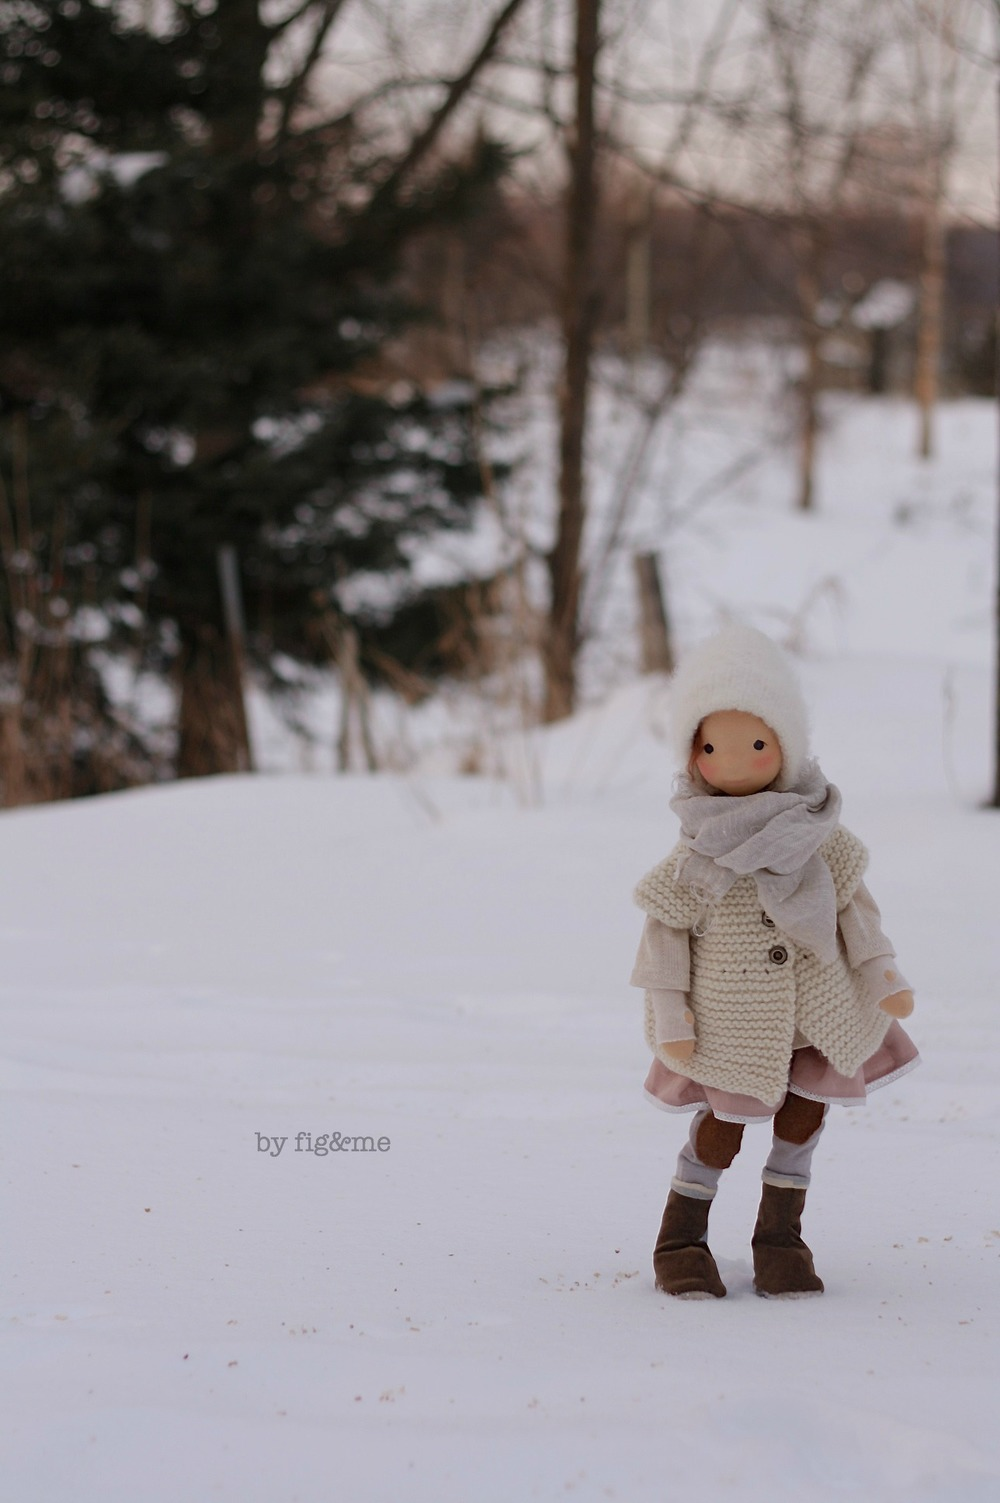 Poet, a Petite Fig cloth doll by Fig and me.